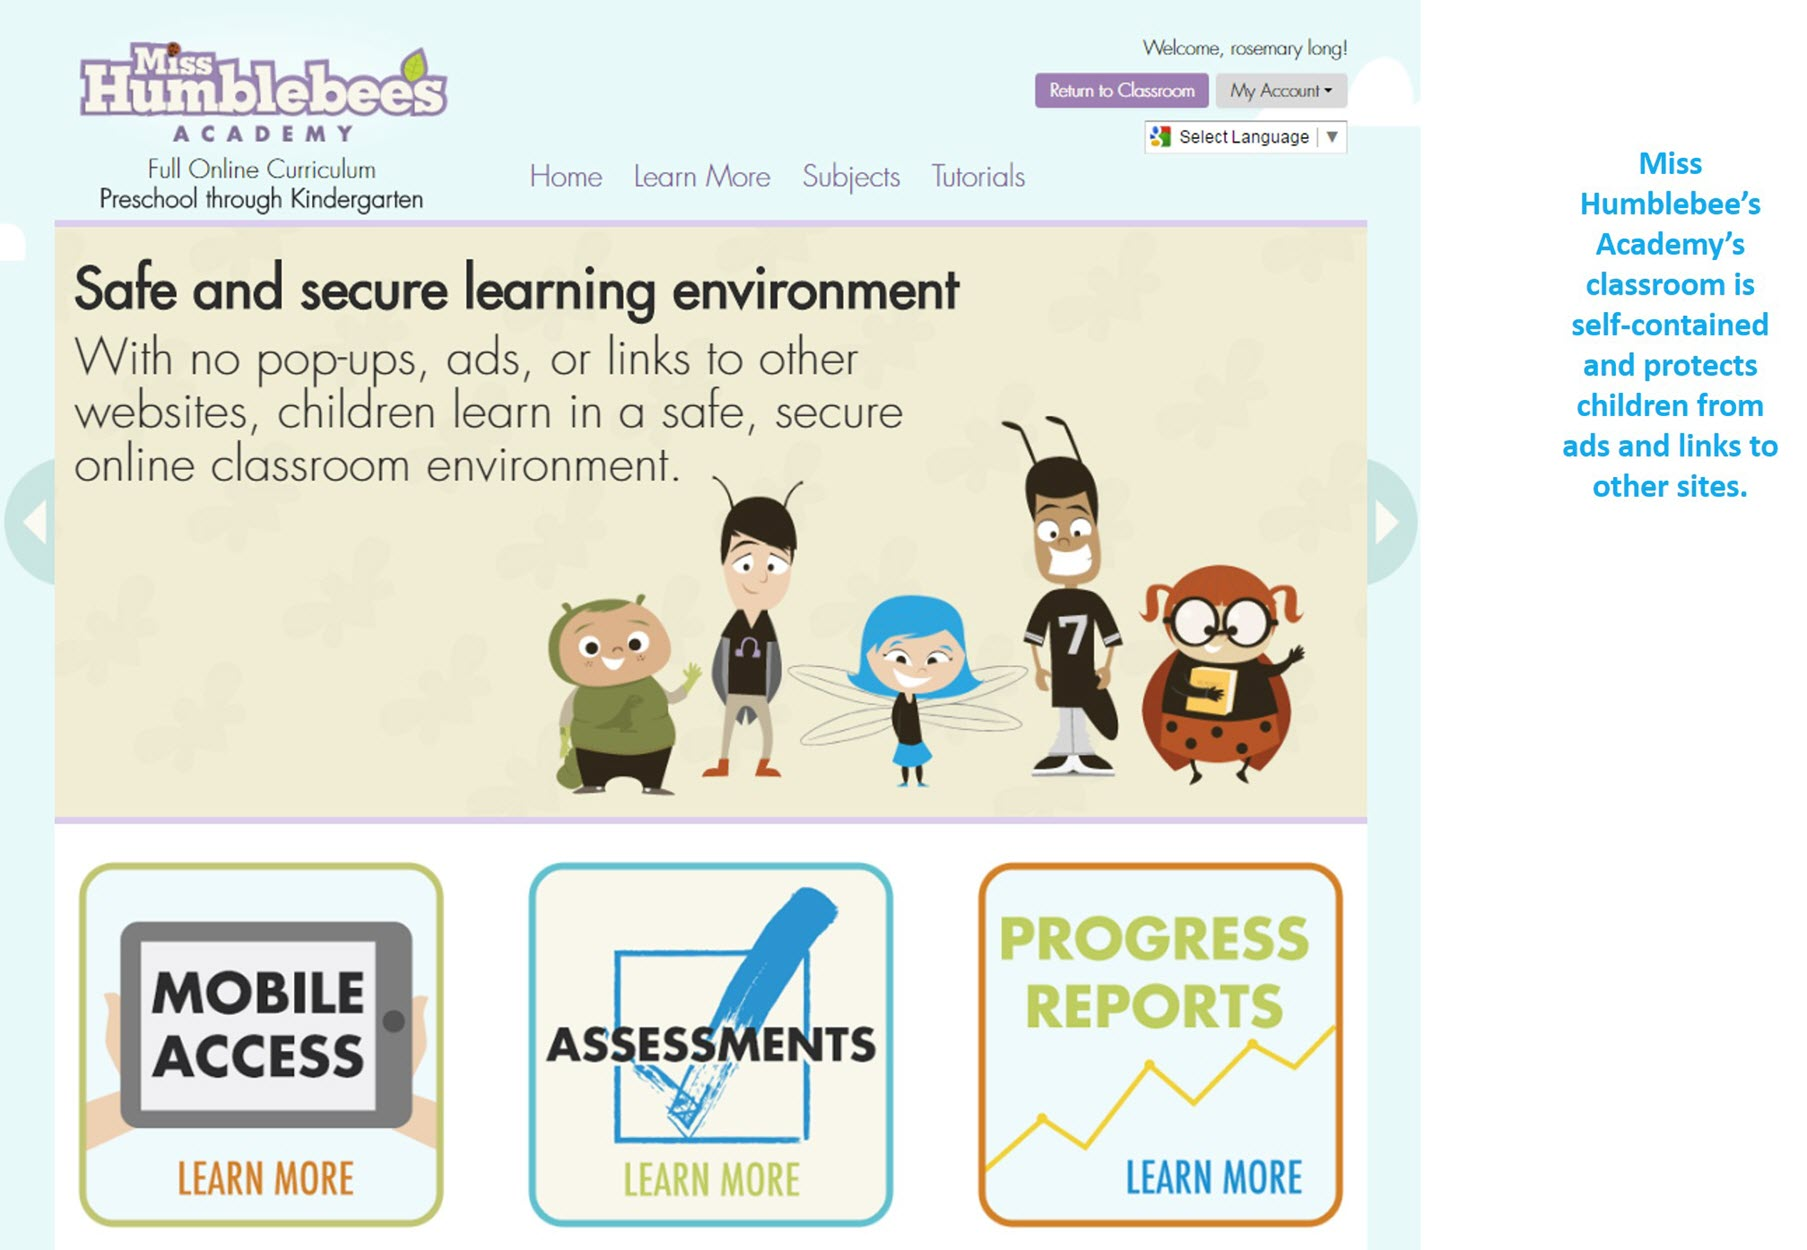 Miss Humblebee's Academy's classroom is self-contained and protects children from ads and links to other sites.